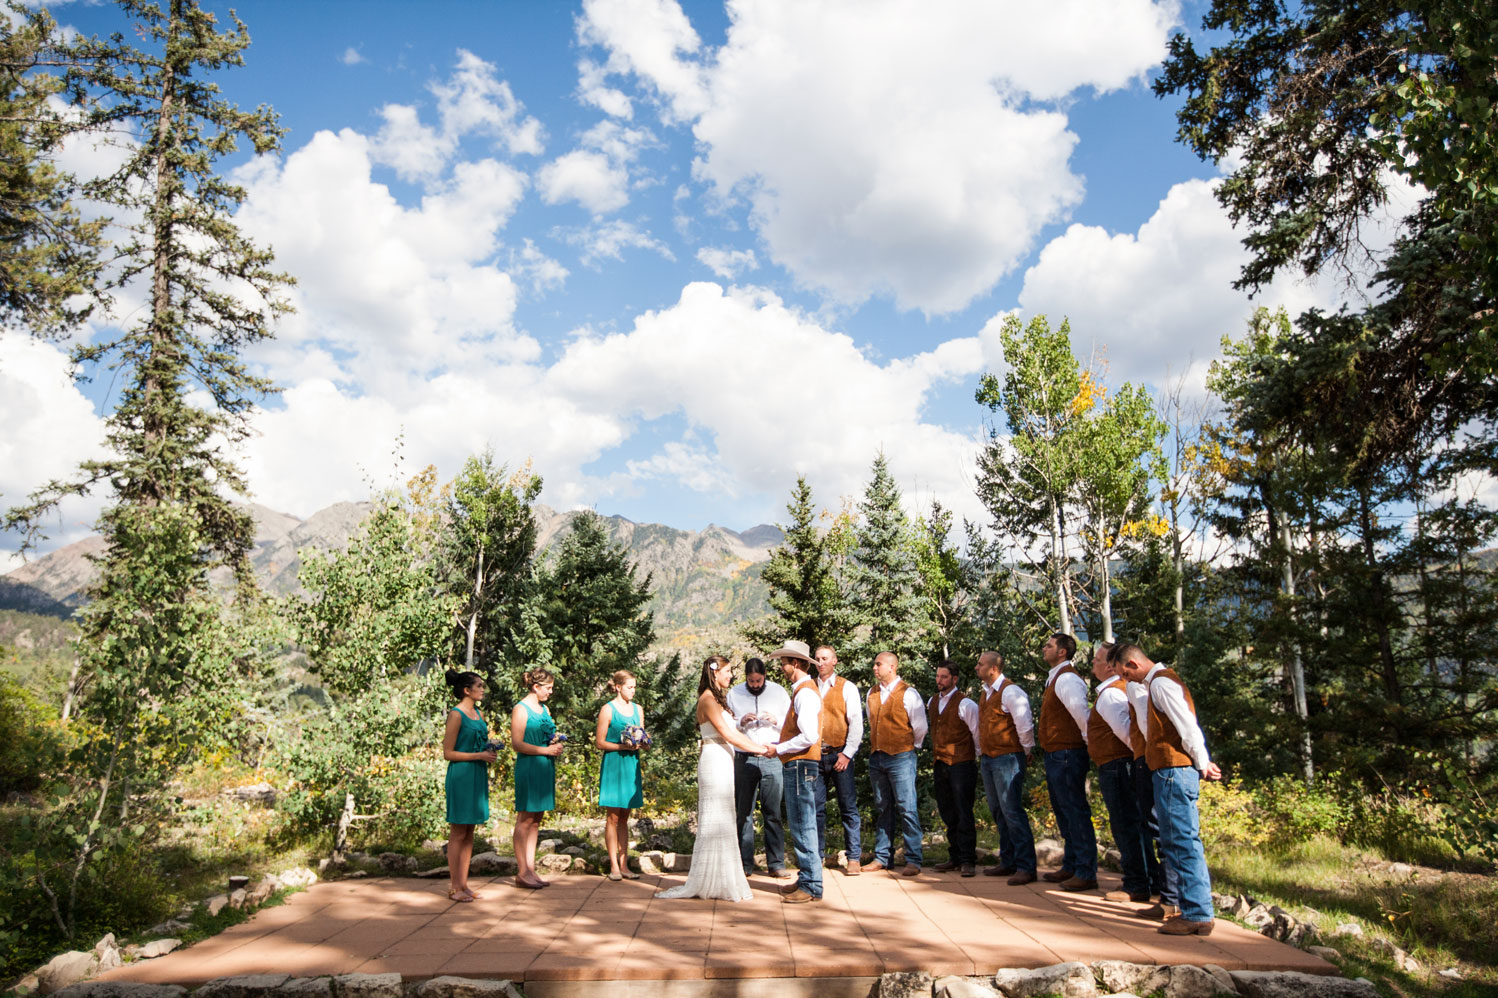 Wedding Destination: Durango Mountain Resort